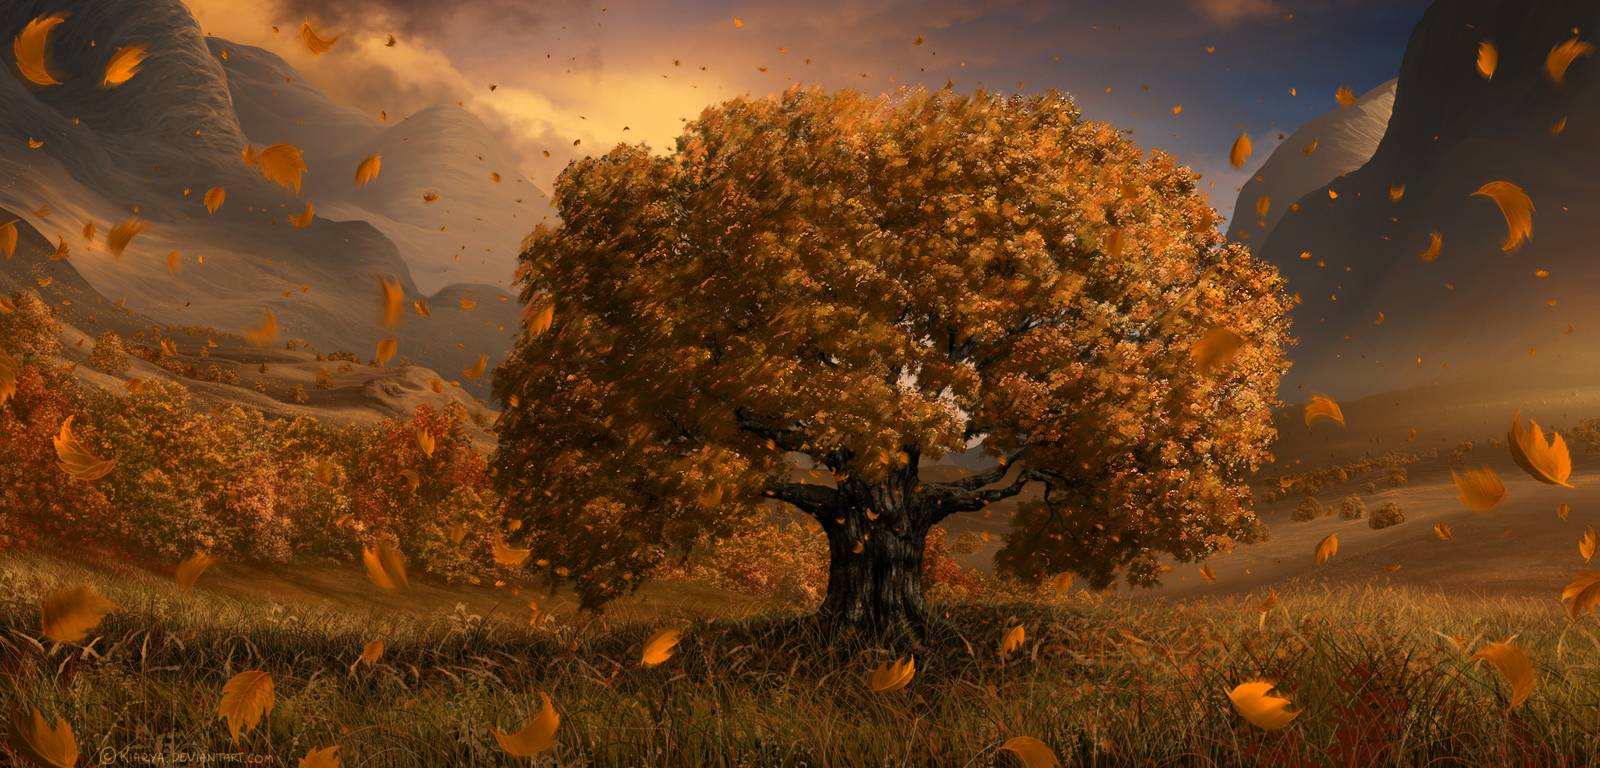 trees-leaves-wind-pretty-sunset-grass-mountain-artwork-1600x768